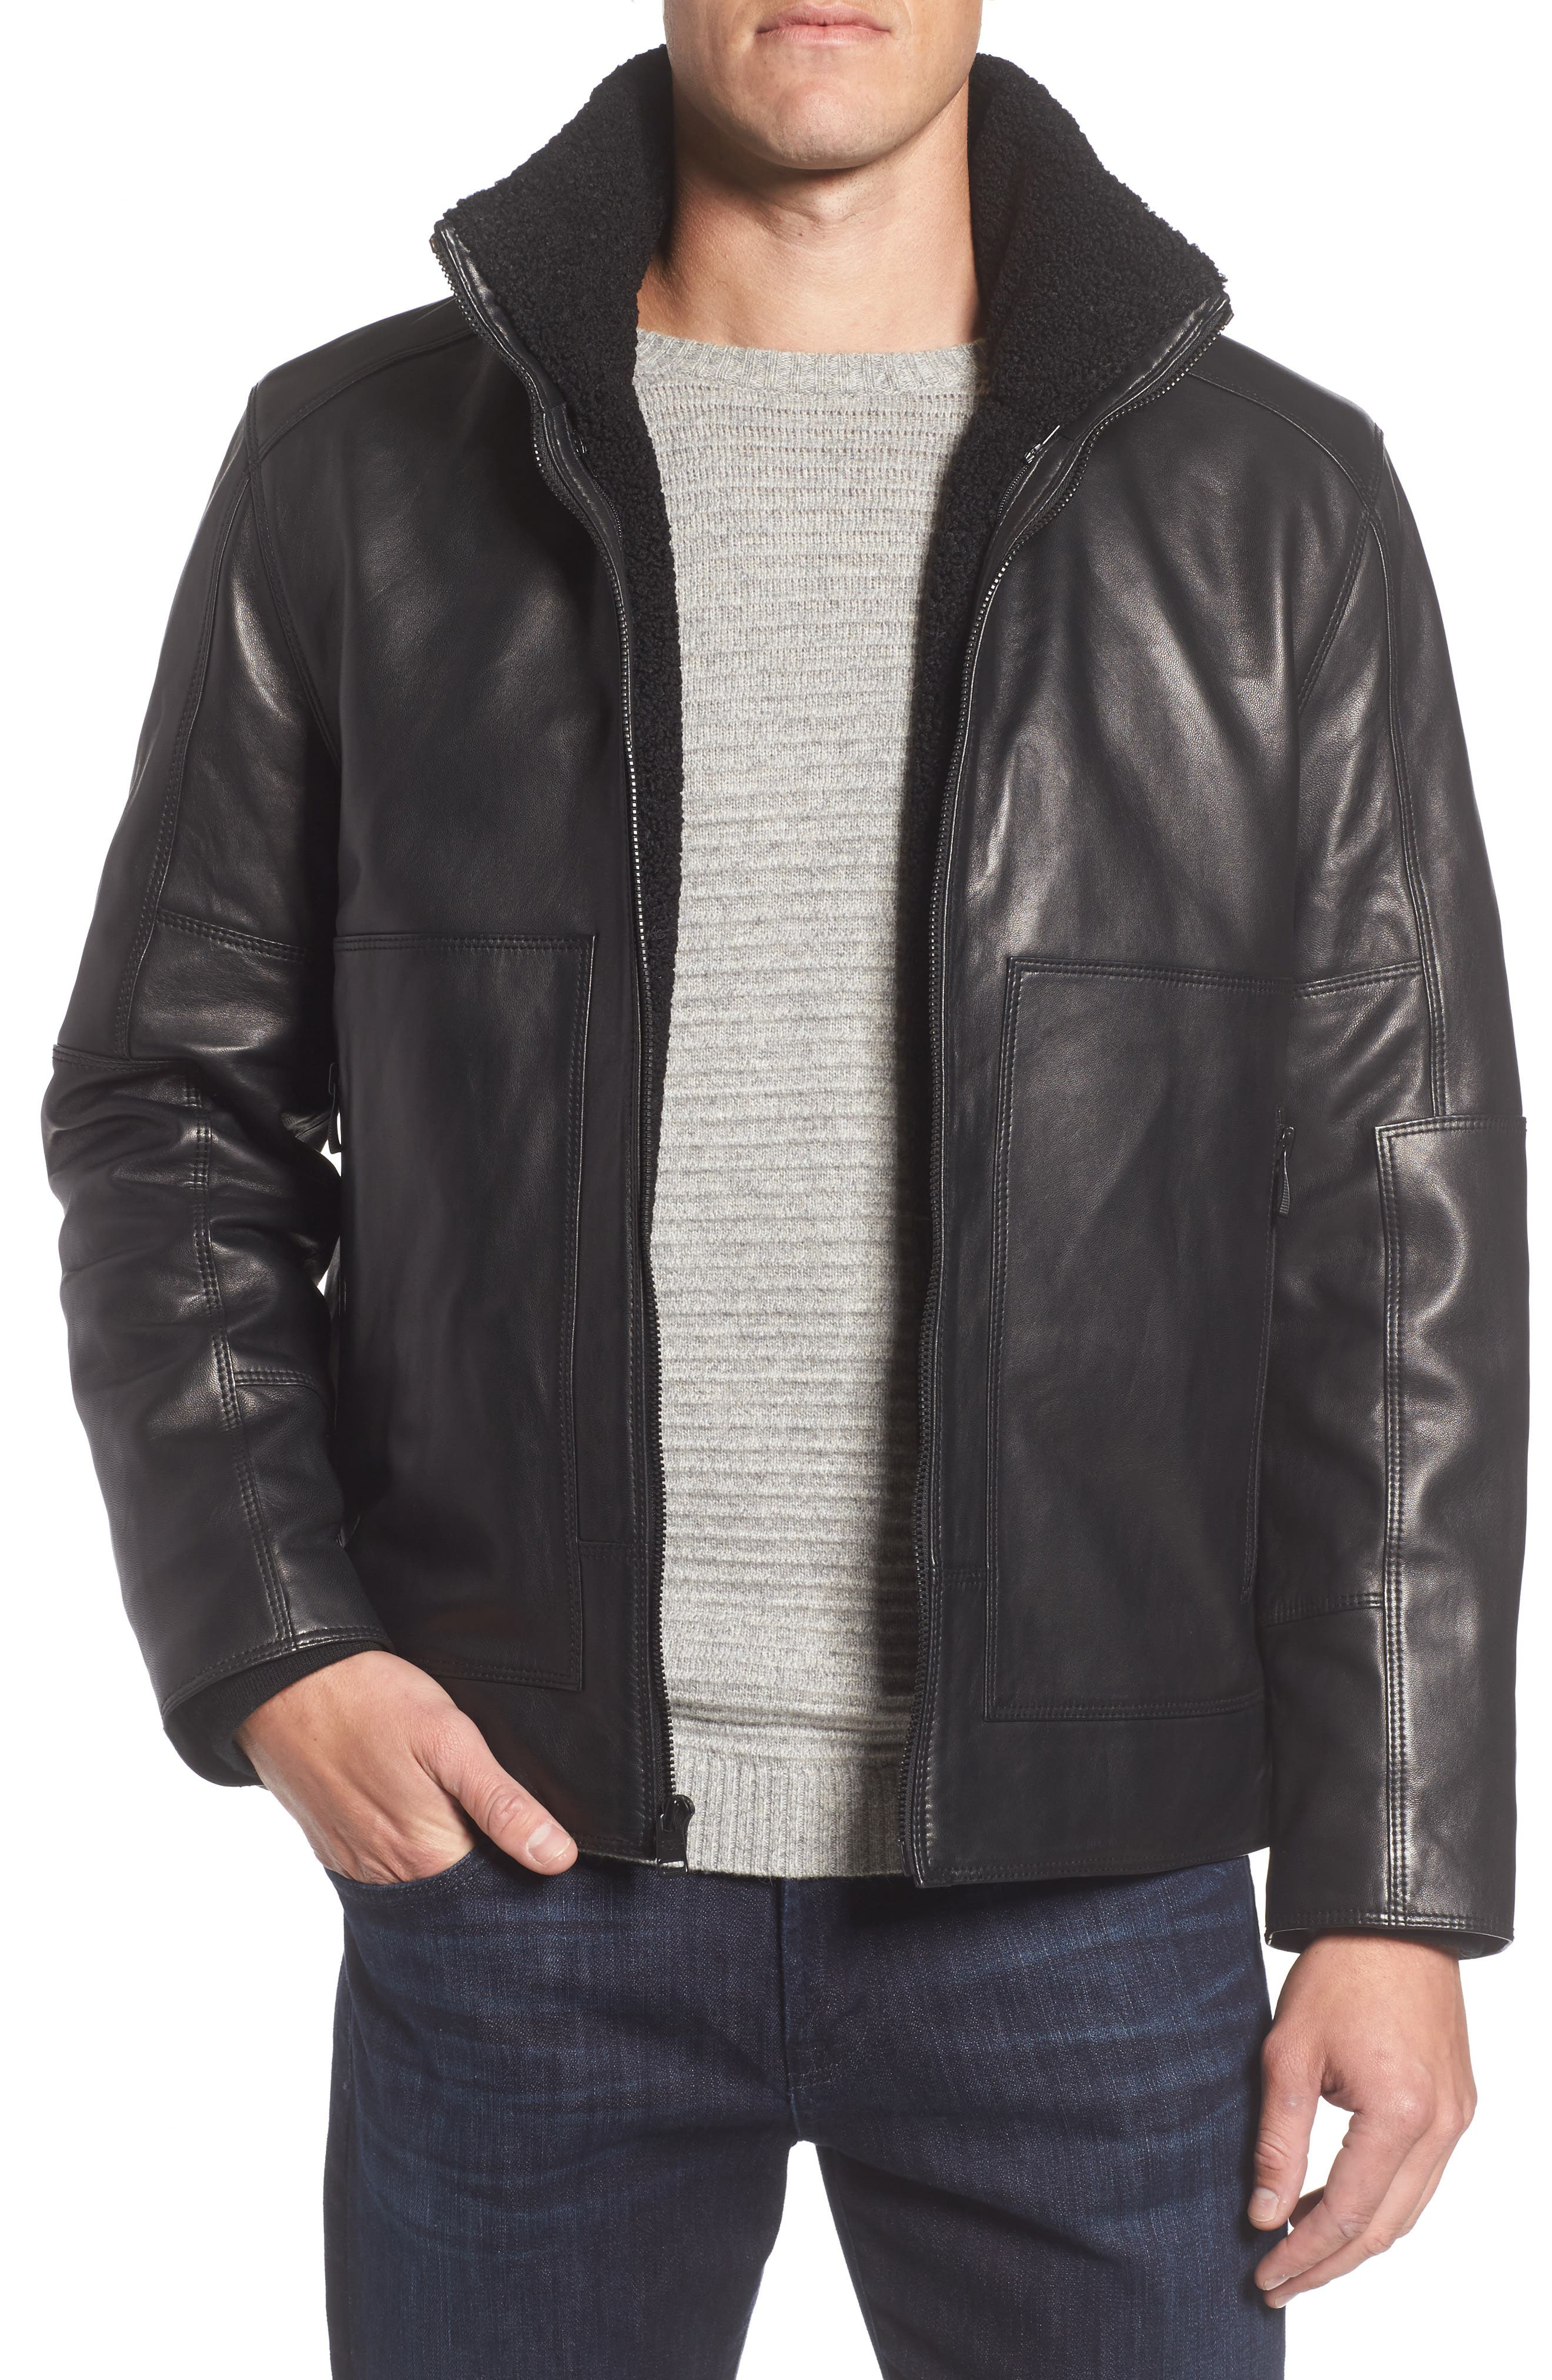 Andrew Marc Trail Master Leather Jacket with Faux Shearling Lining